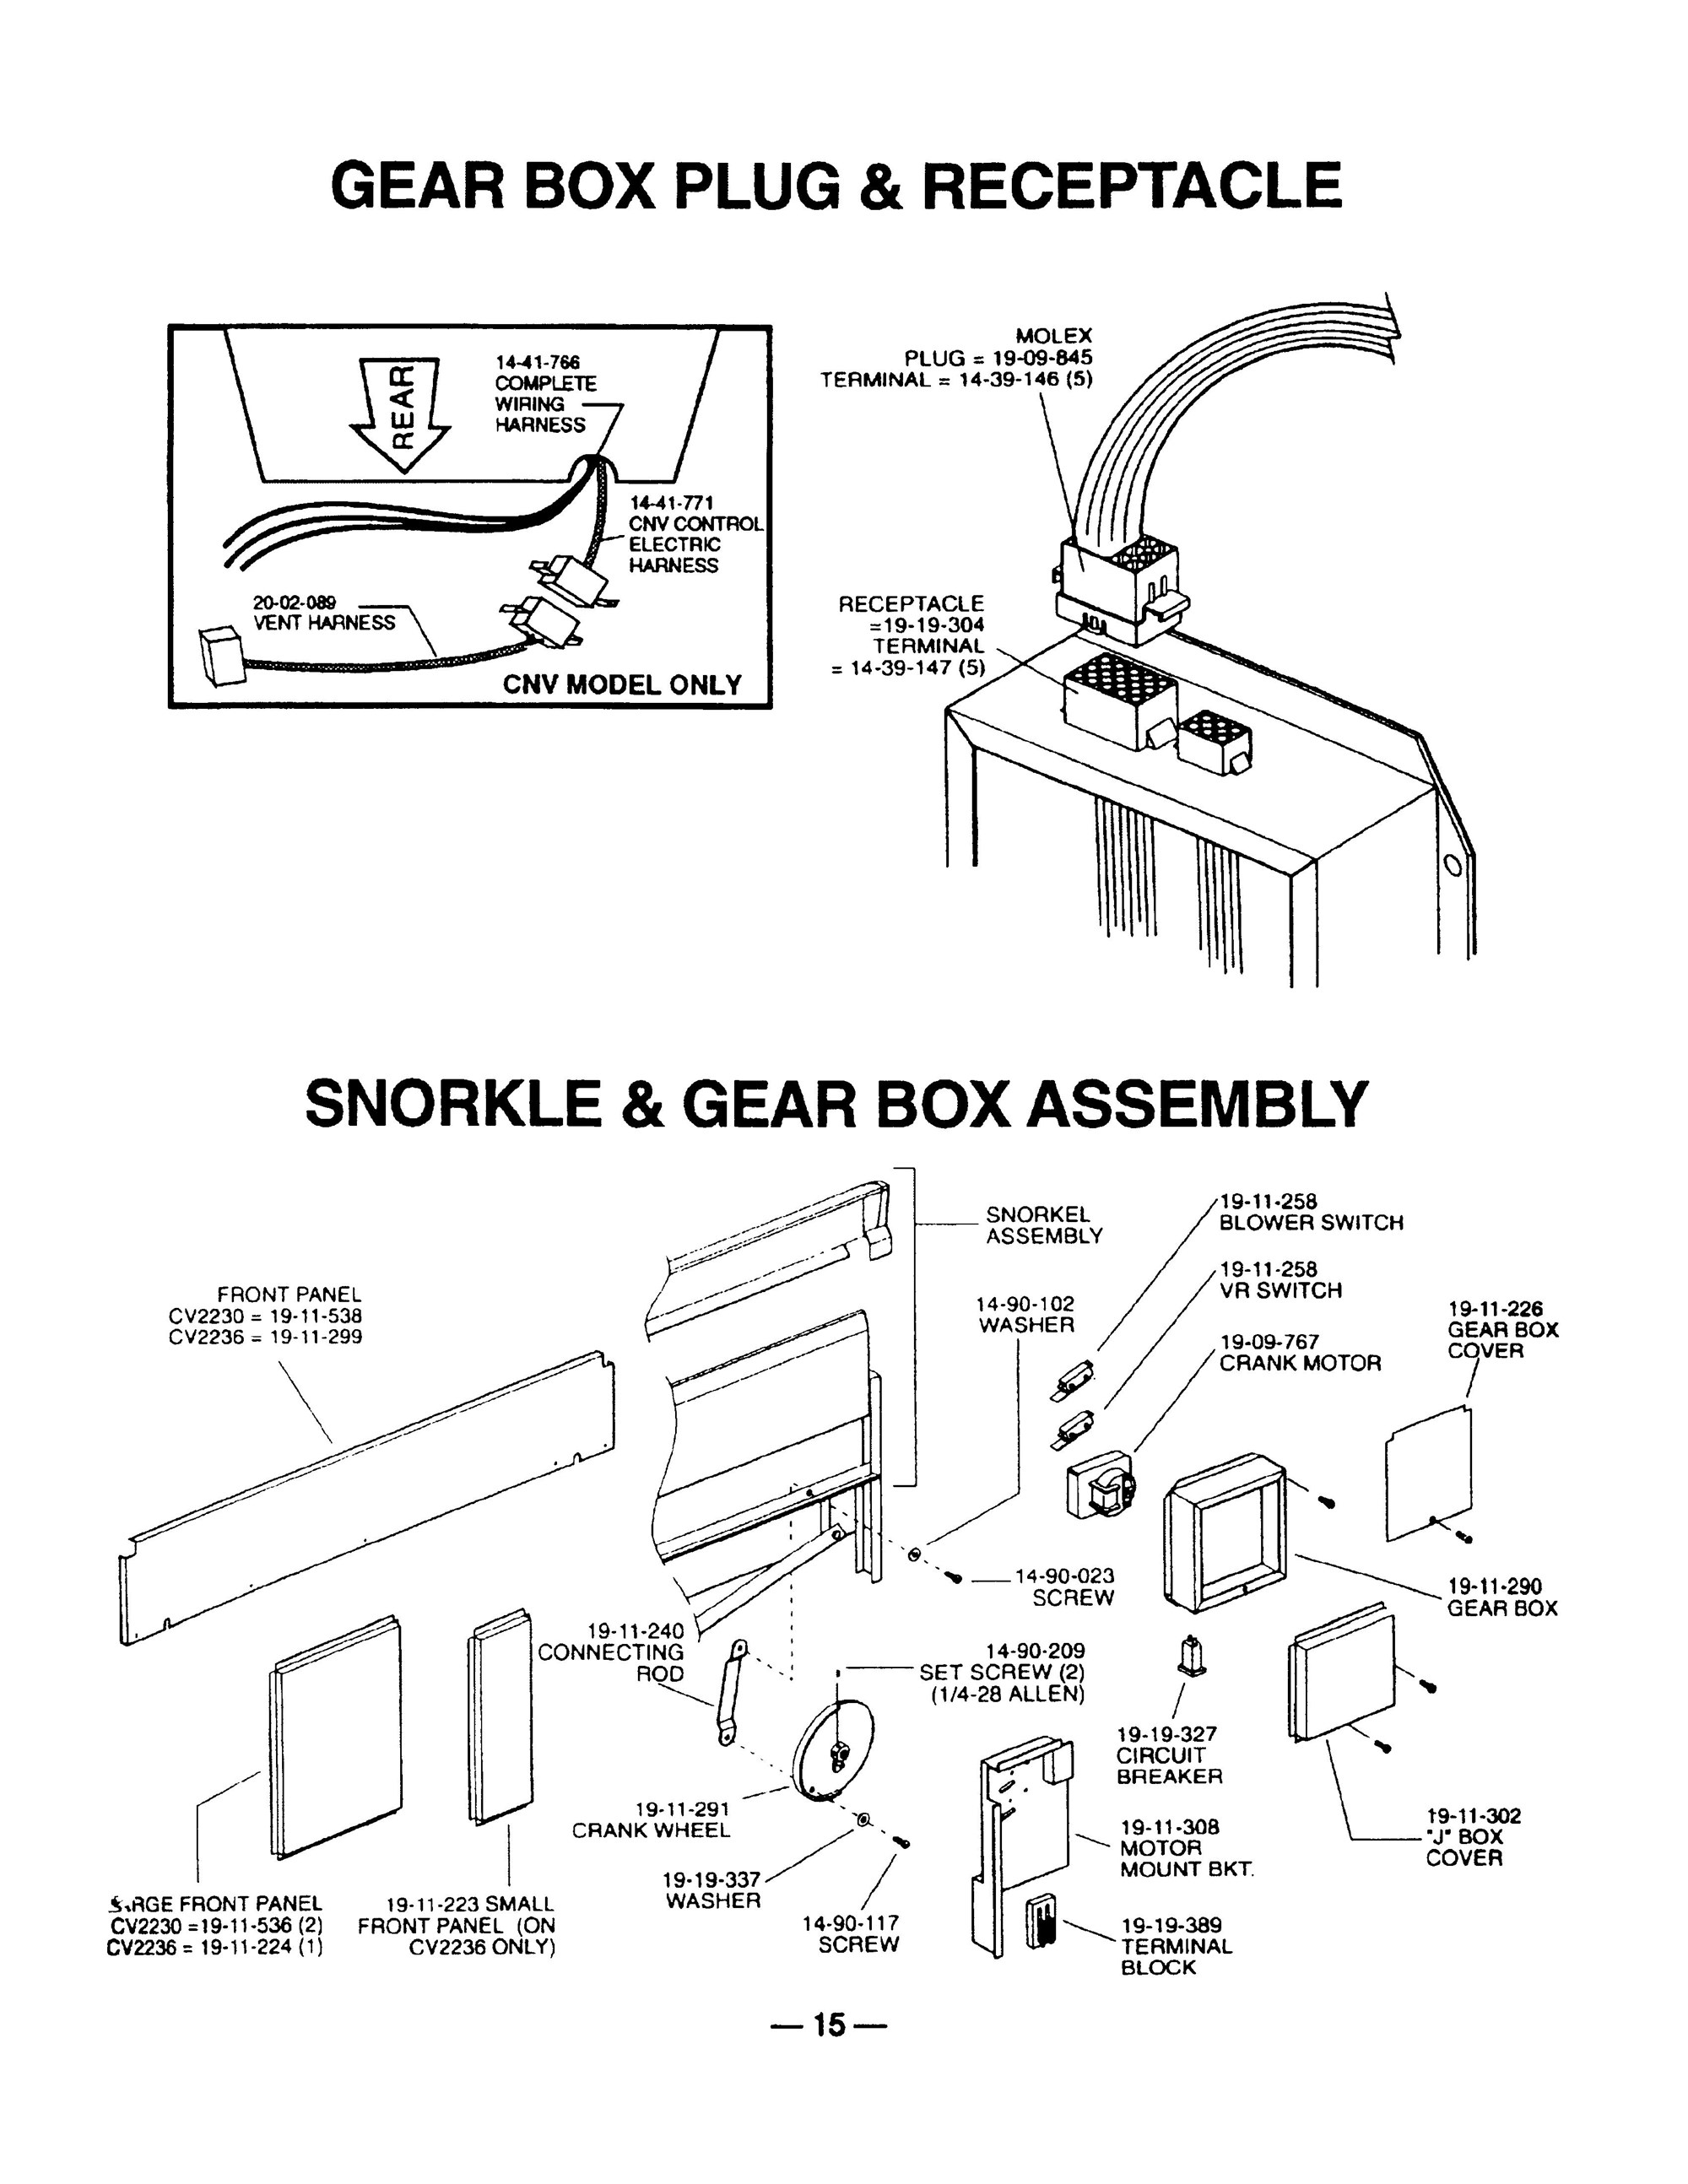 Tmh36gb Gear Box Plug Snorkel Bosch Appliance Parts Washer Wiring Diagram Click To View